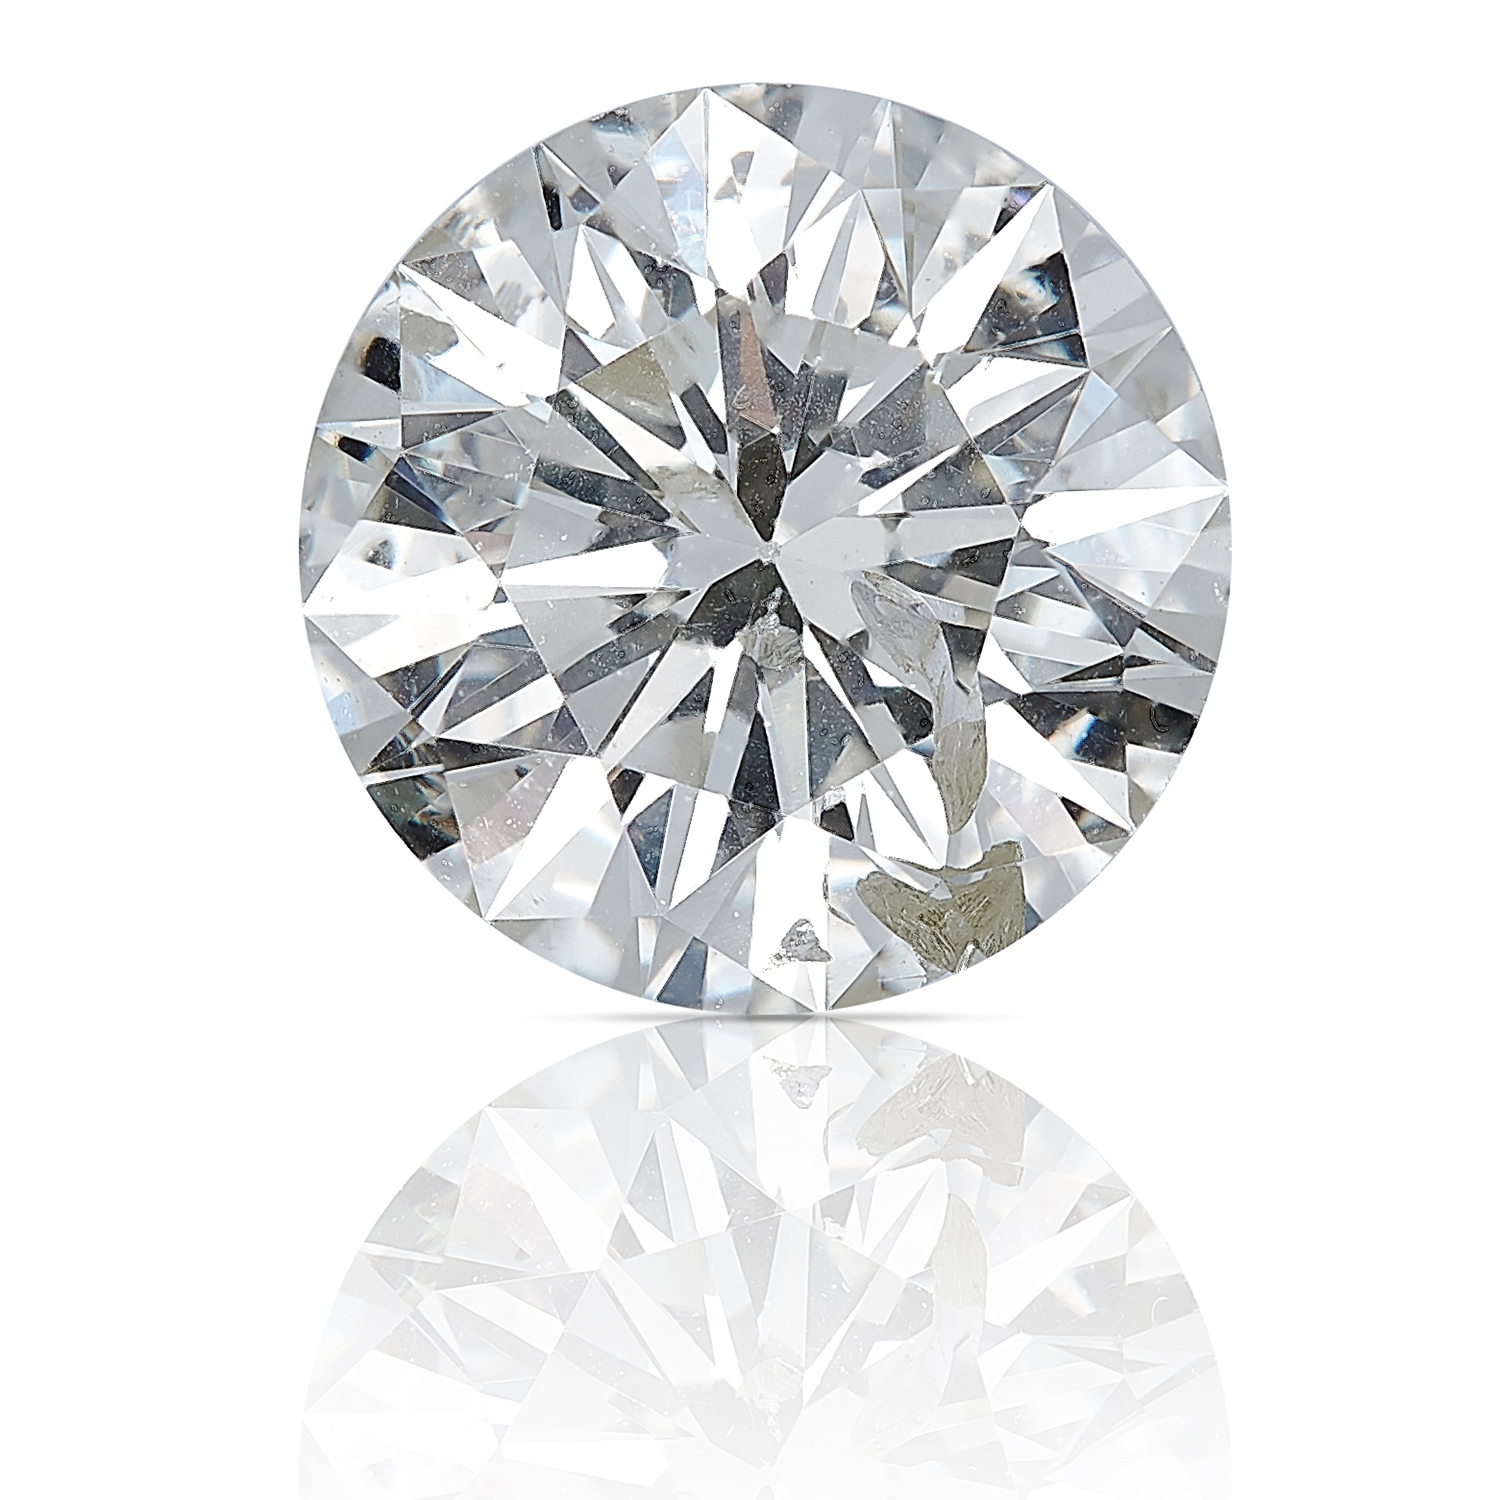 A ROUND CUT MODERN BRILLIANT DIAMOND TOTALLING 1.14cts, UNMOUNTED.